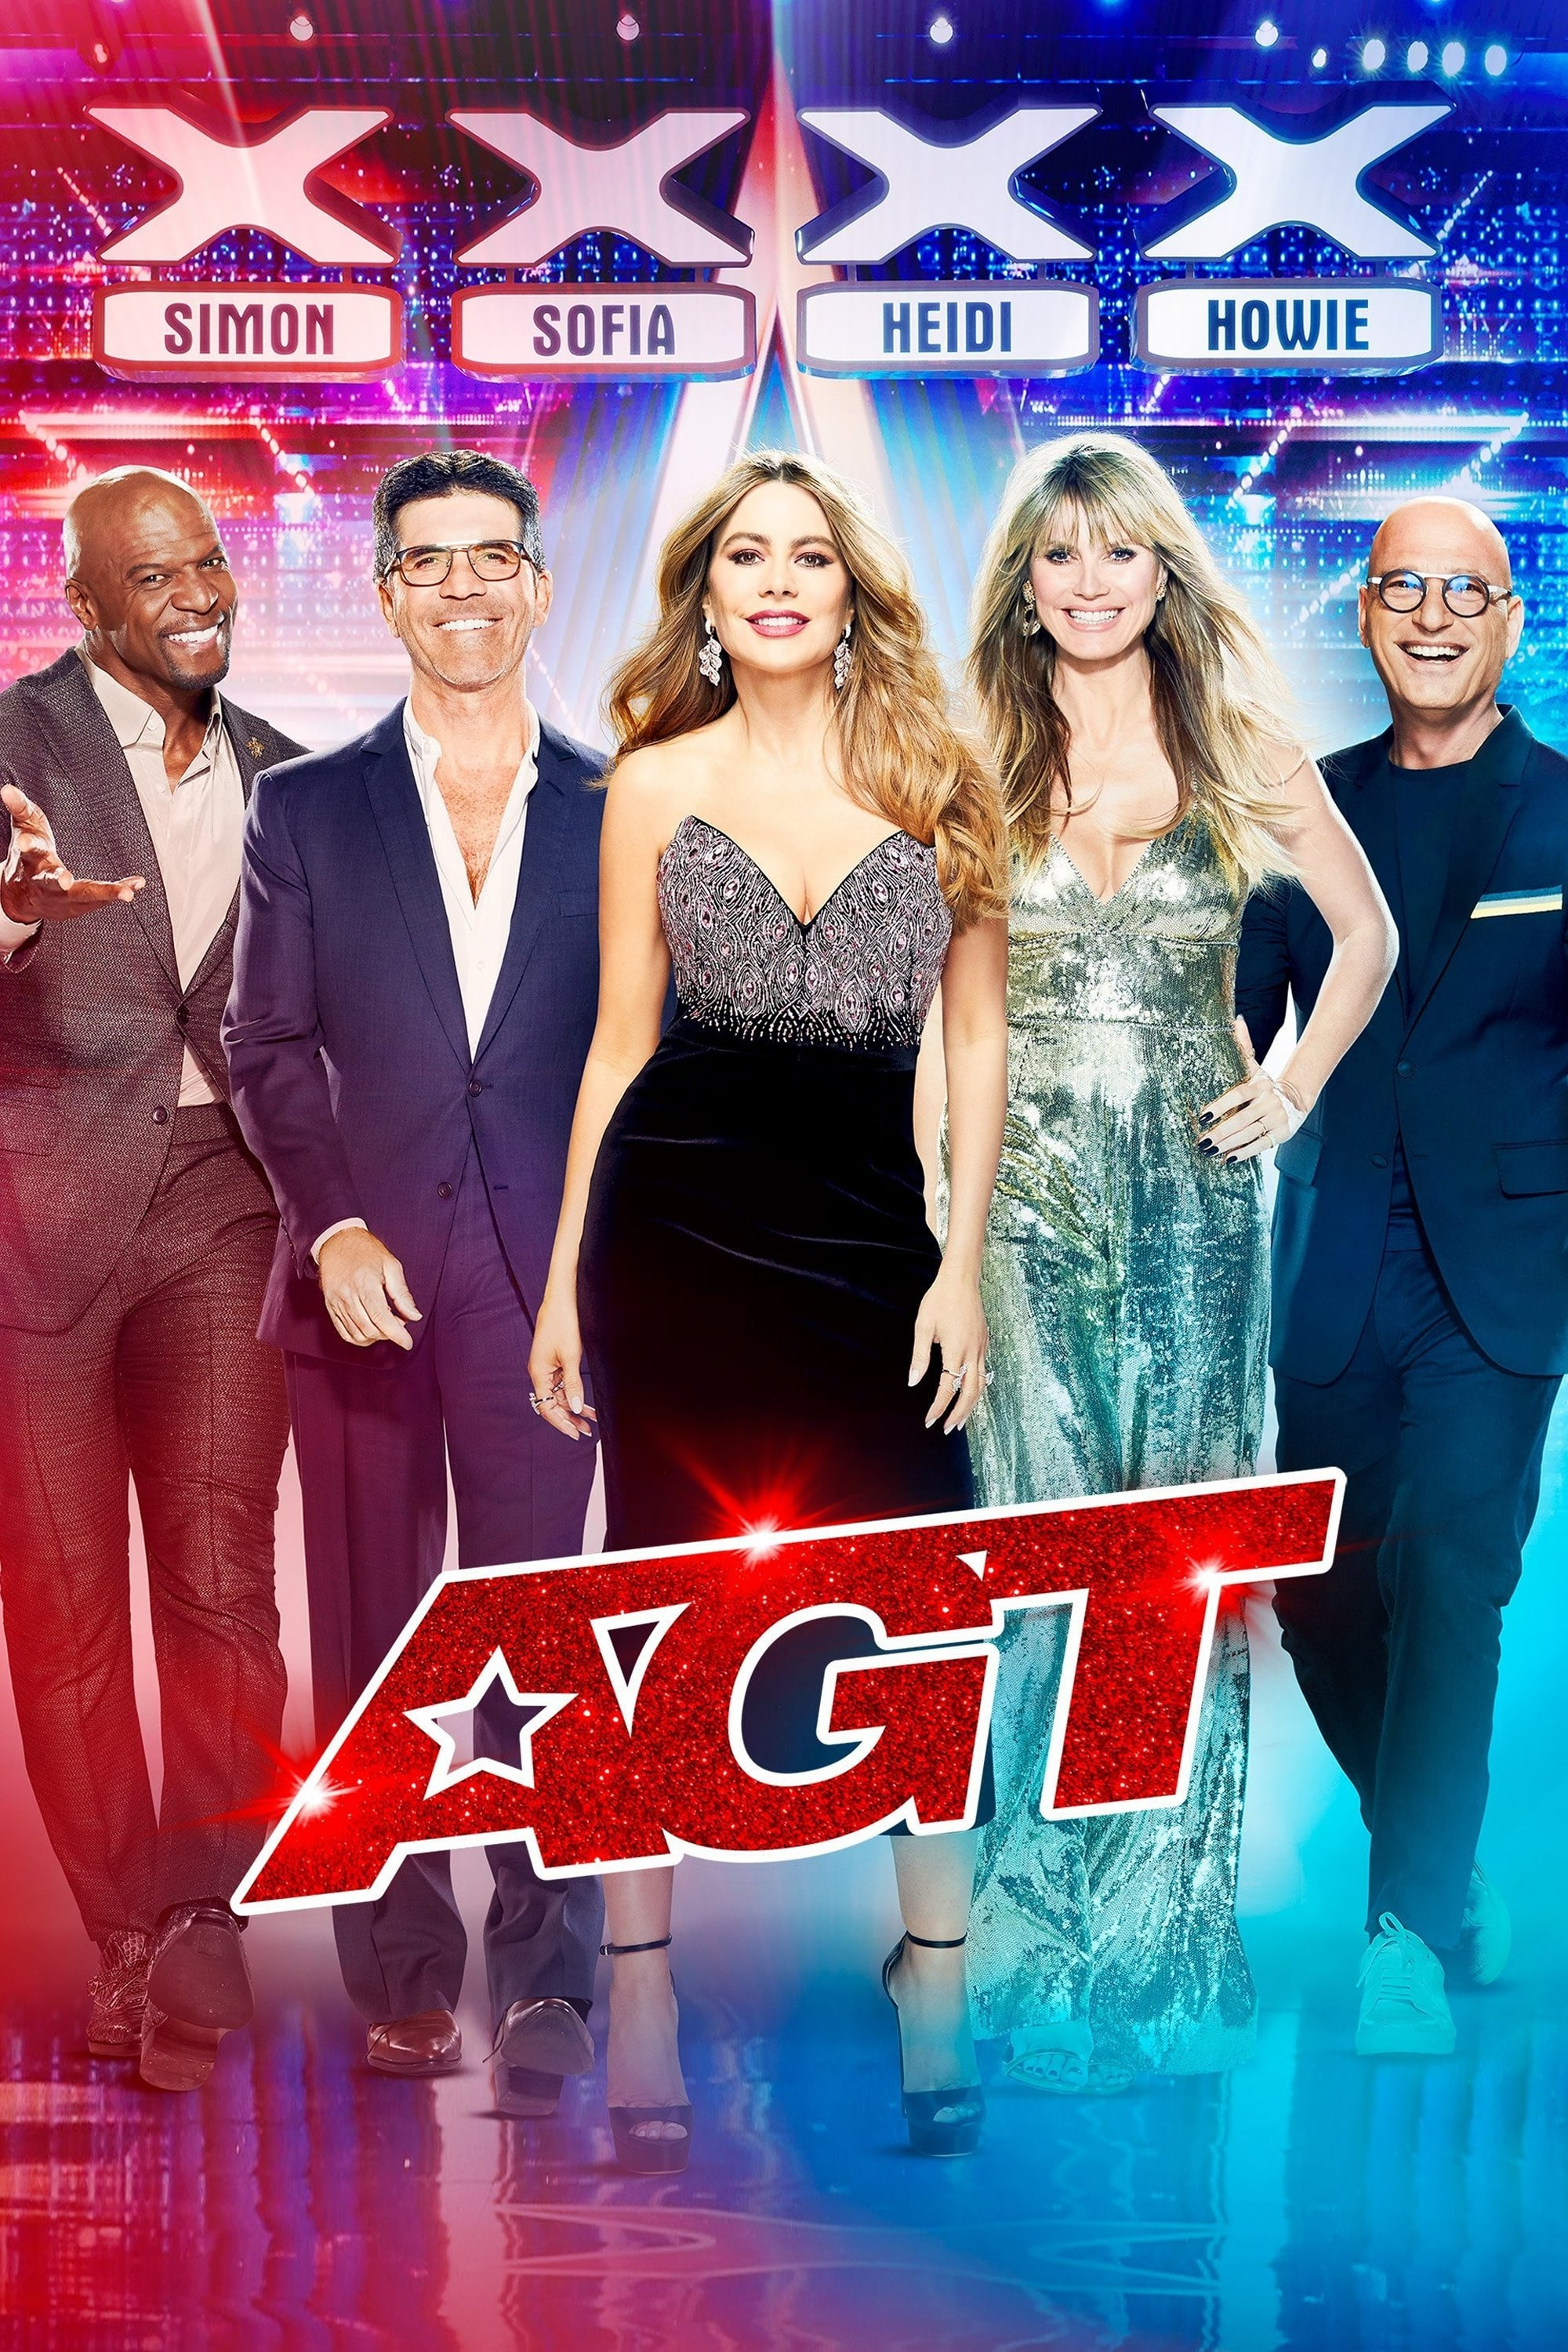 America's Got Talent Season 15